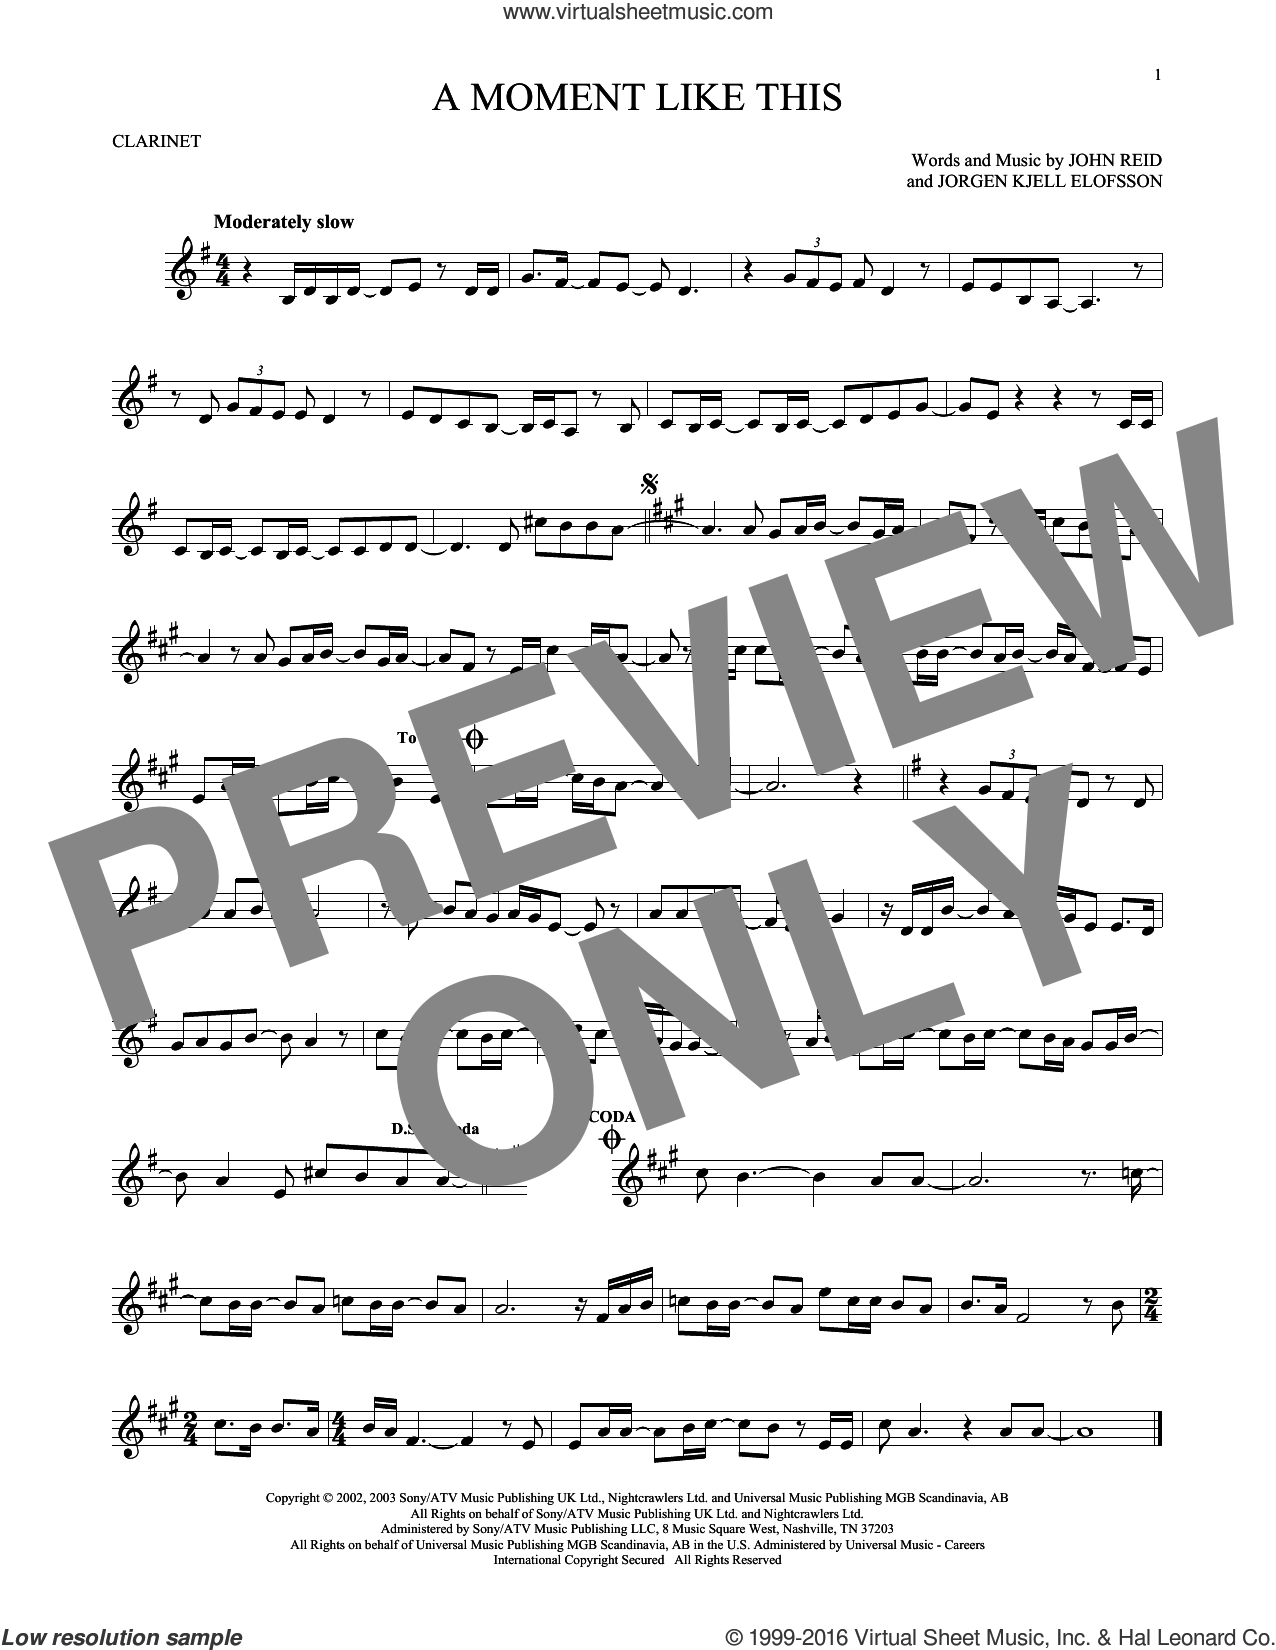 A Moment Like This sheet music for clarinet solo by Kelly Clarkson, John Reid and Jorgen Elofsson, intermediate clarinet. Score Image Preview.